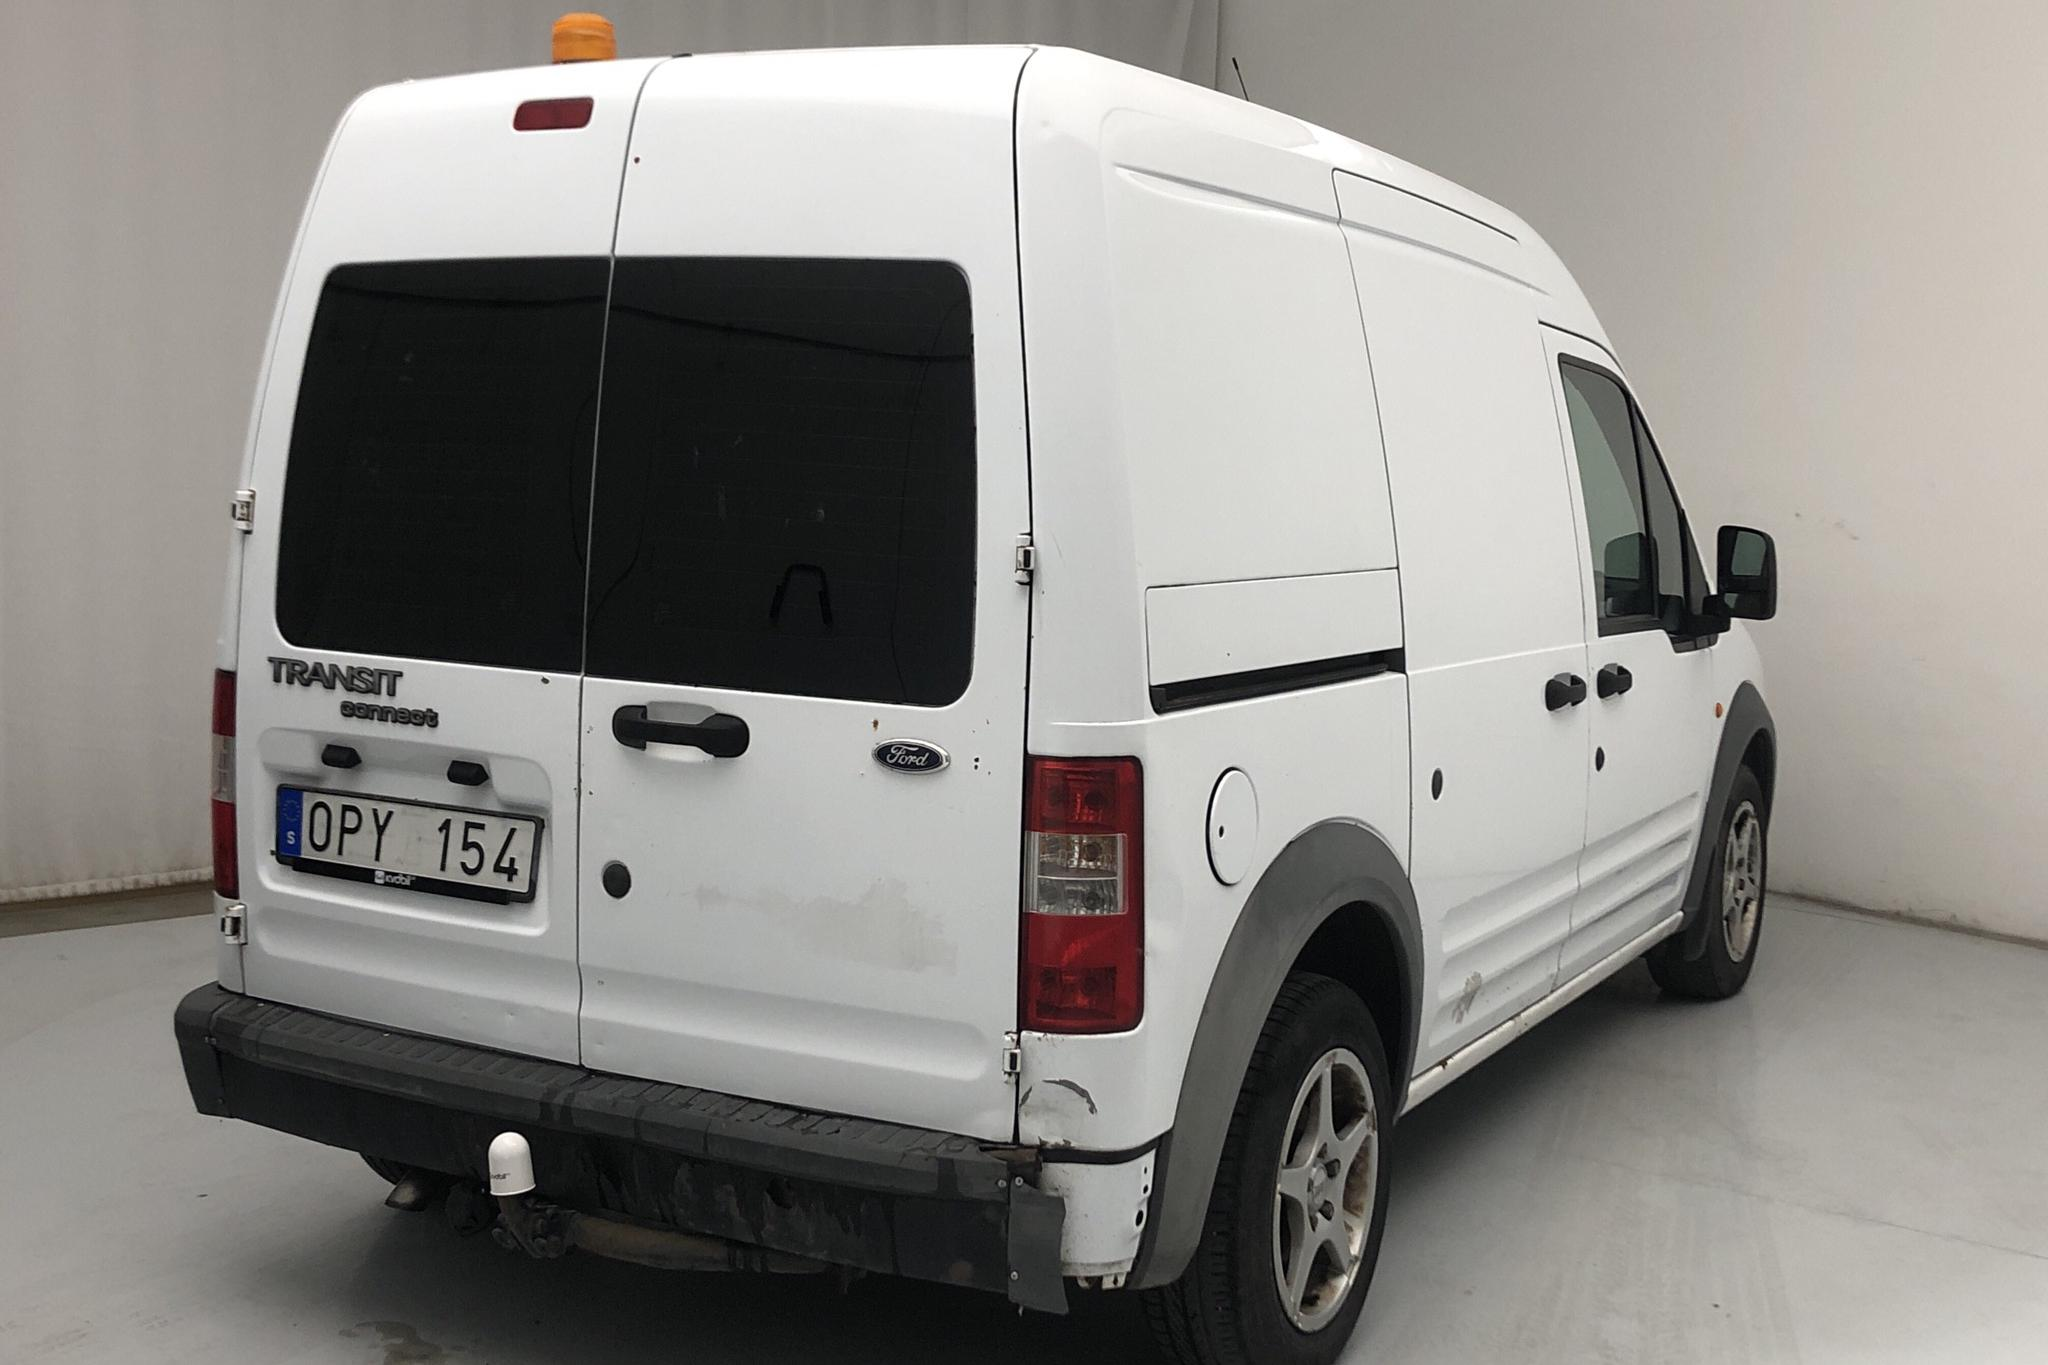 Ford Transit Connect 1.8 TDCi (90hk) - 130 520 km - Manual - white - 2008